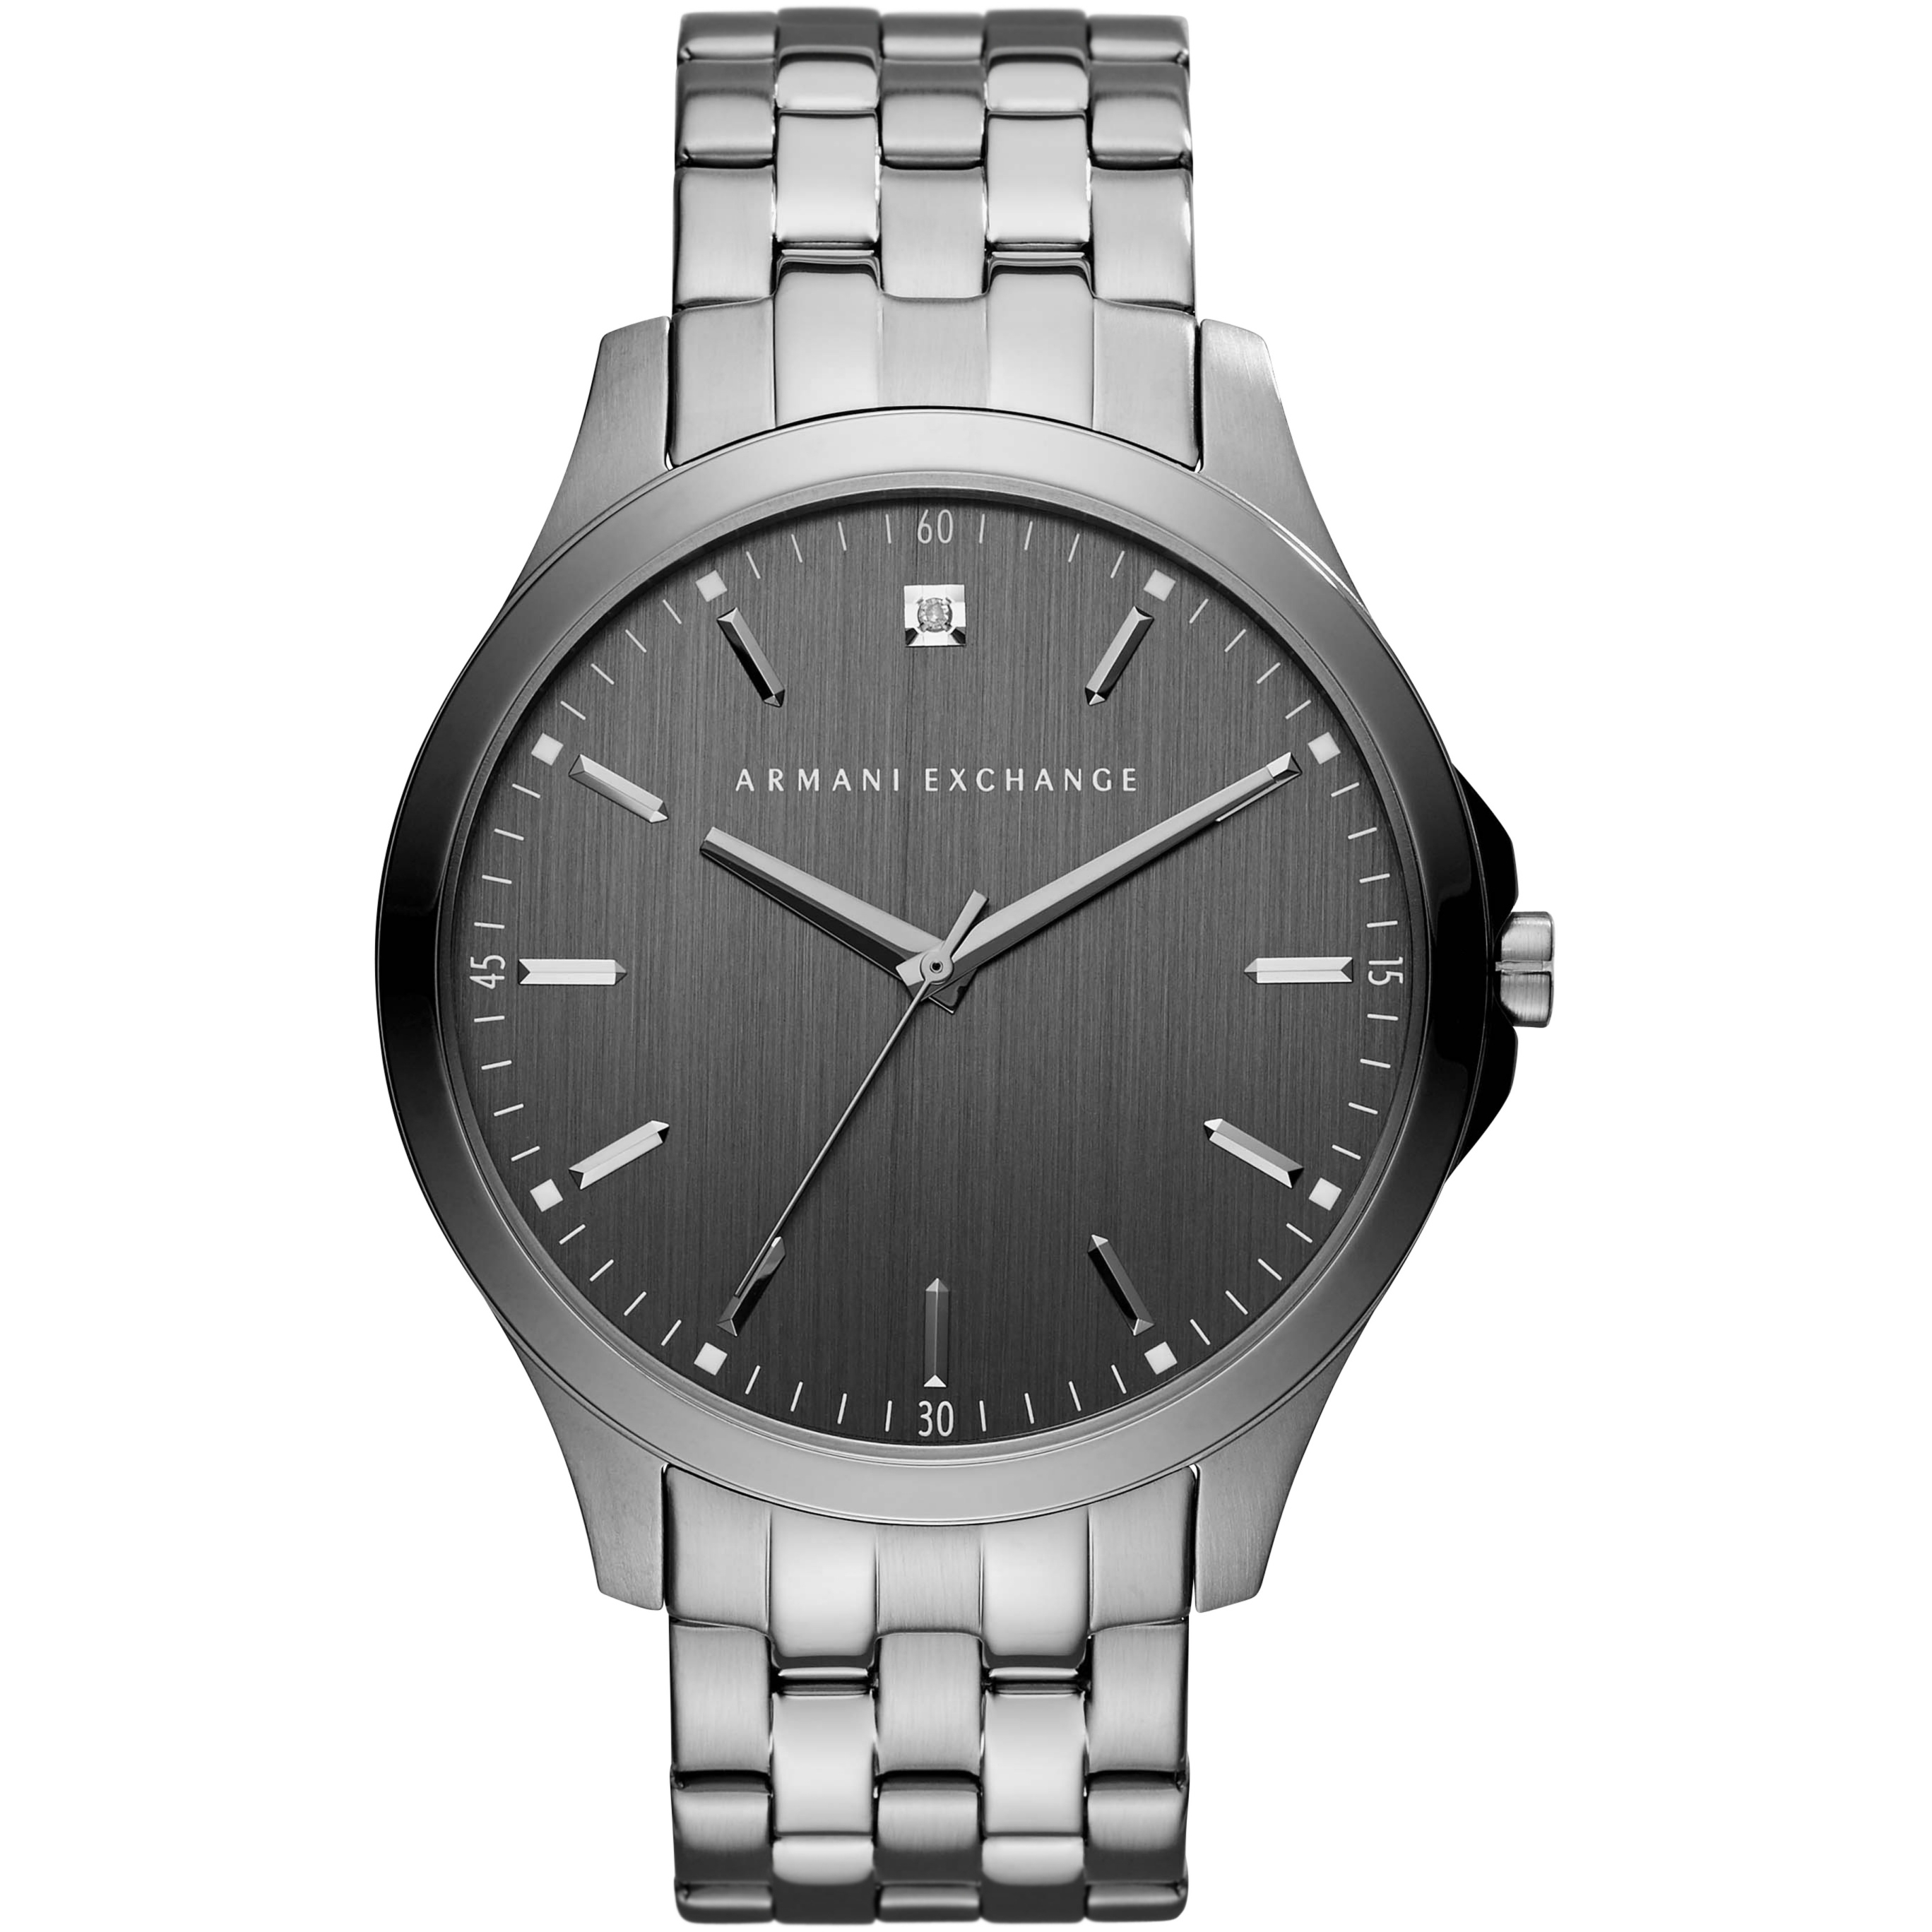 220c2d8affa Gents Armani Exchange Watch (AX2169)